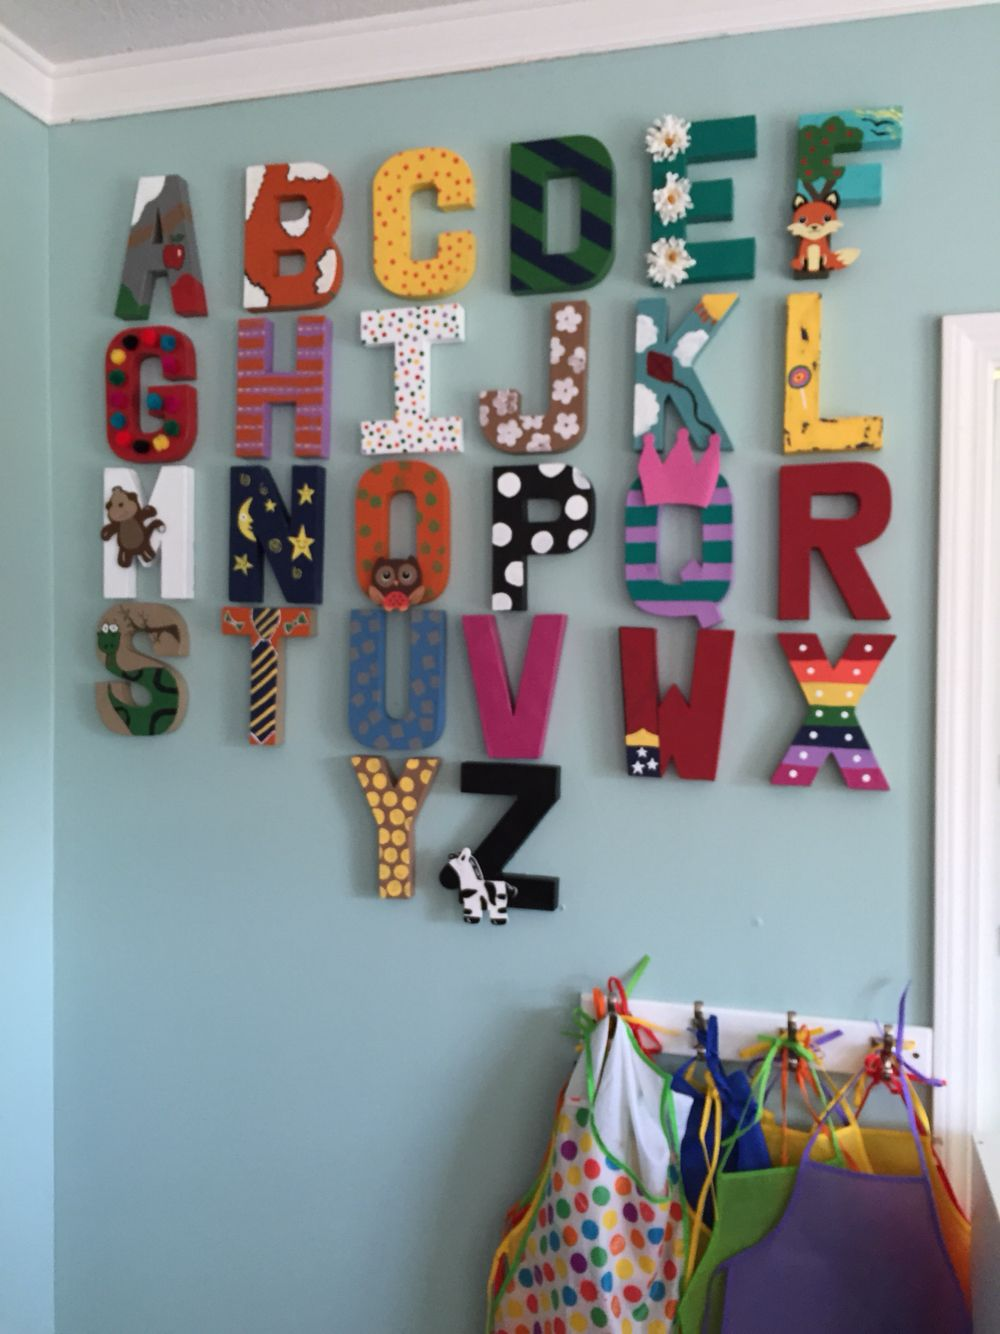 My In Home Daycare Letters My Home Pinterest Stand For - Home daycare design ideas